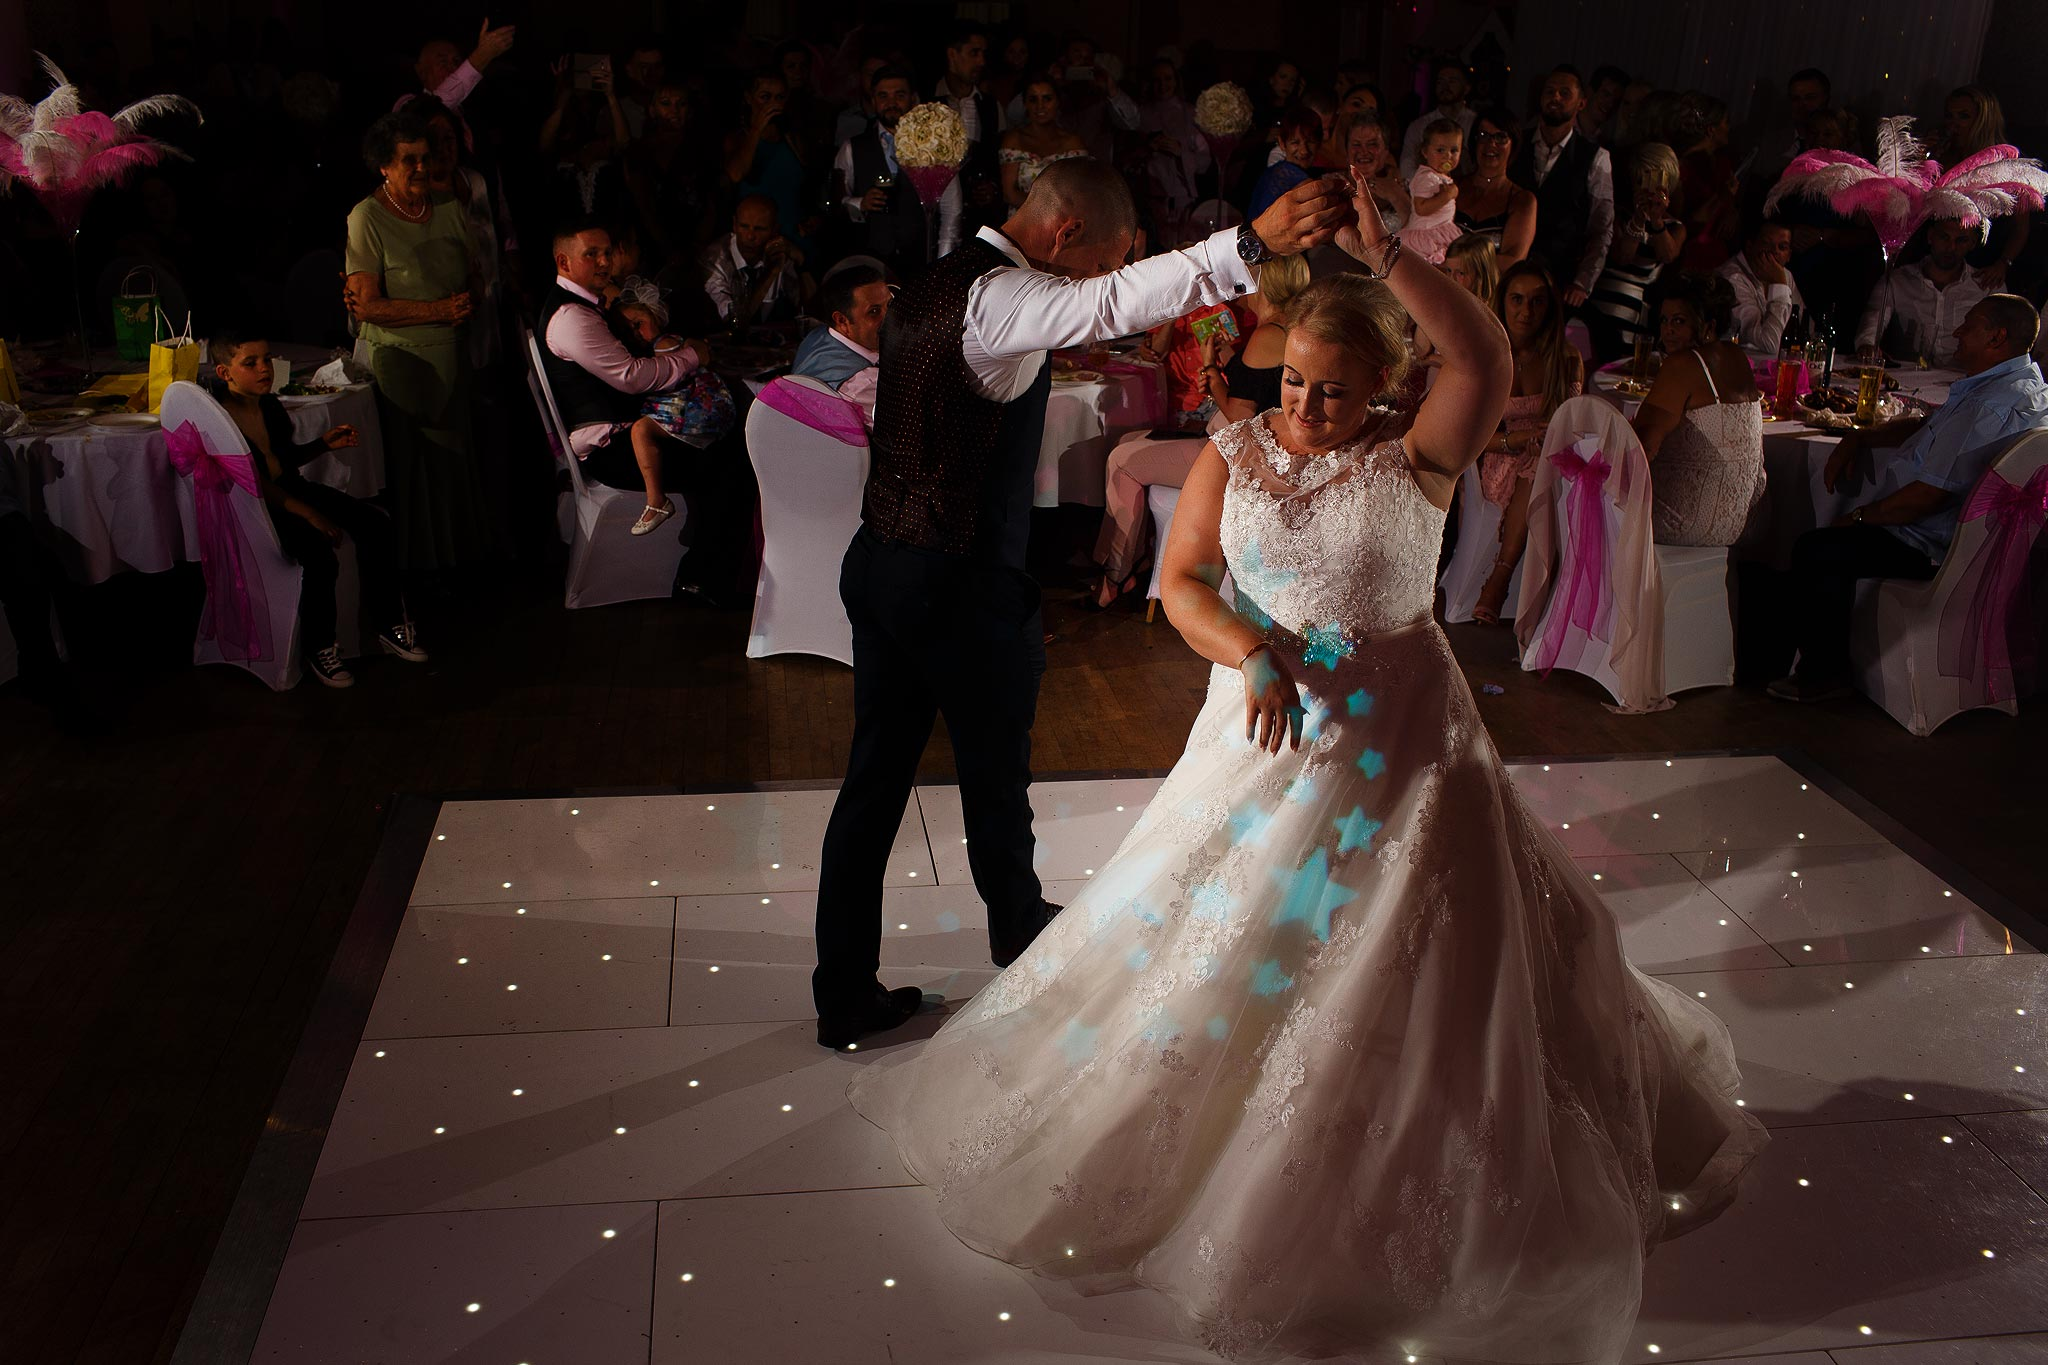 Bride and groom dancing on their wedding day at Swinton Masonic Hall